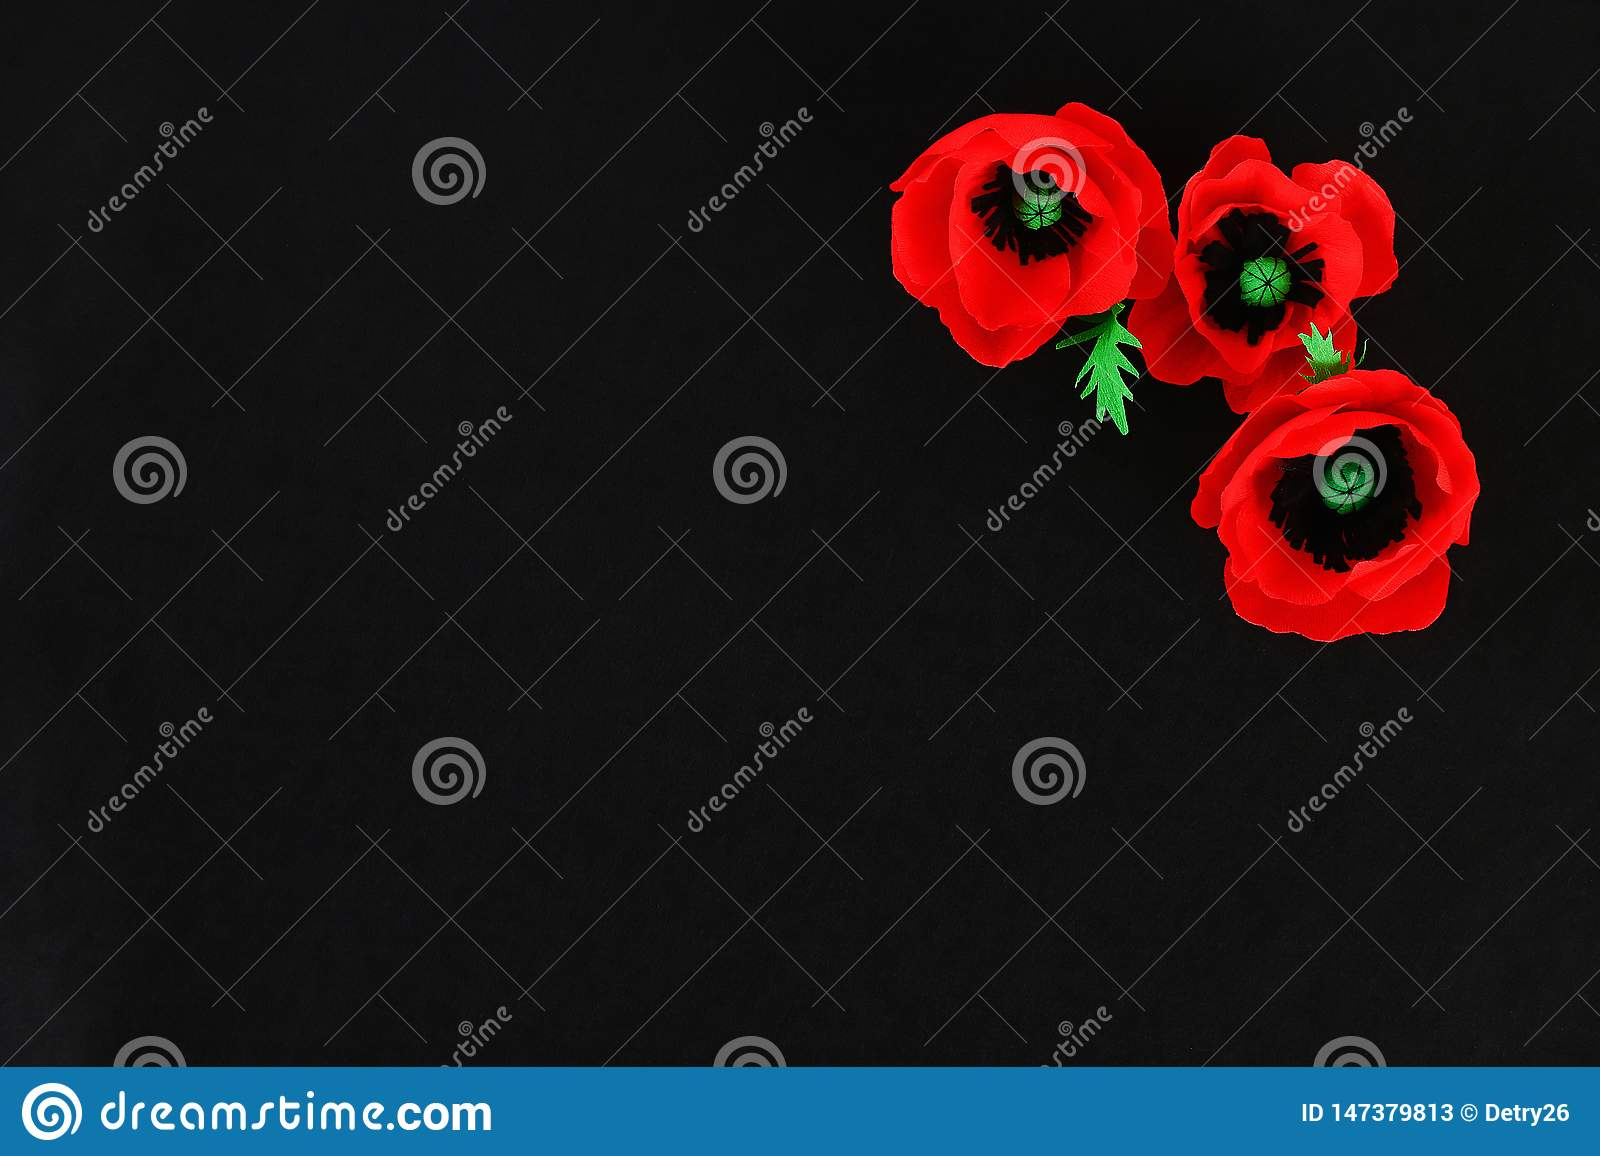 Diy paper red poppy Anzac Day, Remembrance, Remember, Memorial day crepe paper on black background